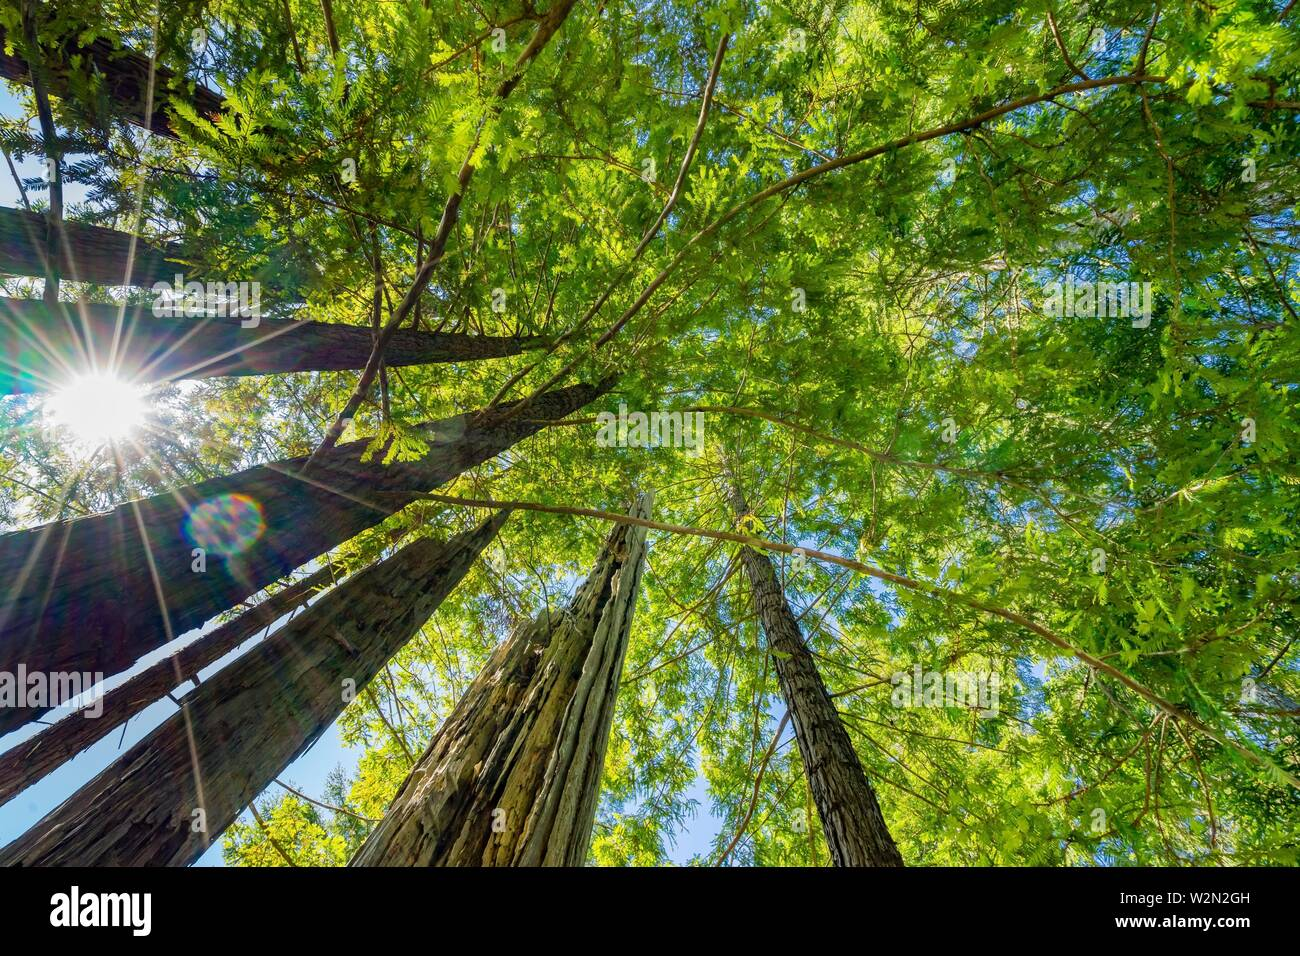 Sun Star Rays Green Towering Redwoods National Park Newton B Drury Drive Crescent City California. Tallest trees in World, 1000s of year old, size - Stock Image